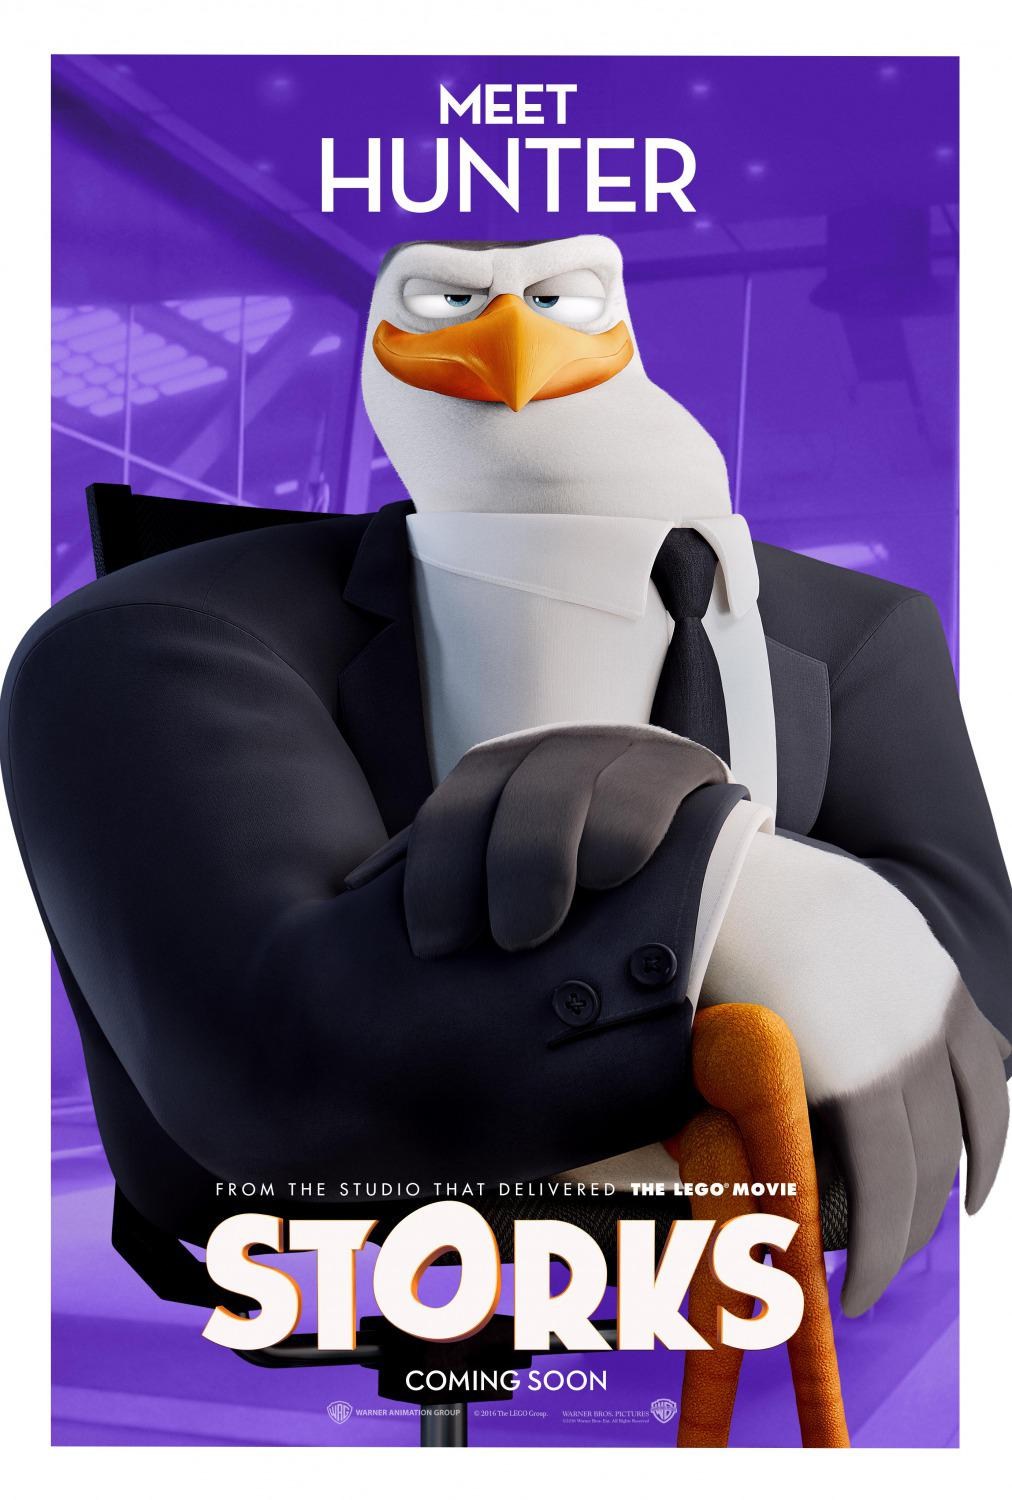 Storks - Cicogne - Hunter Boss